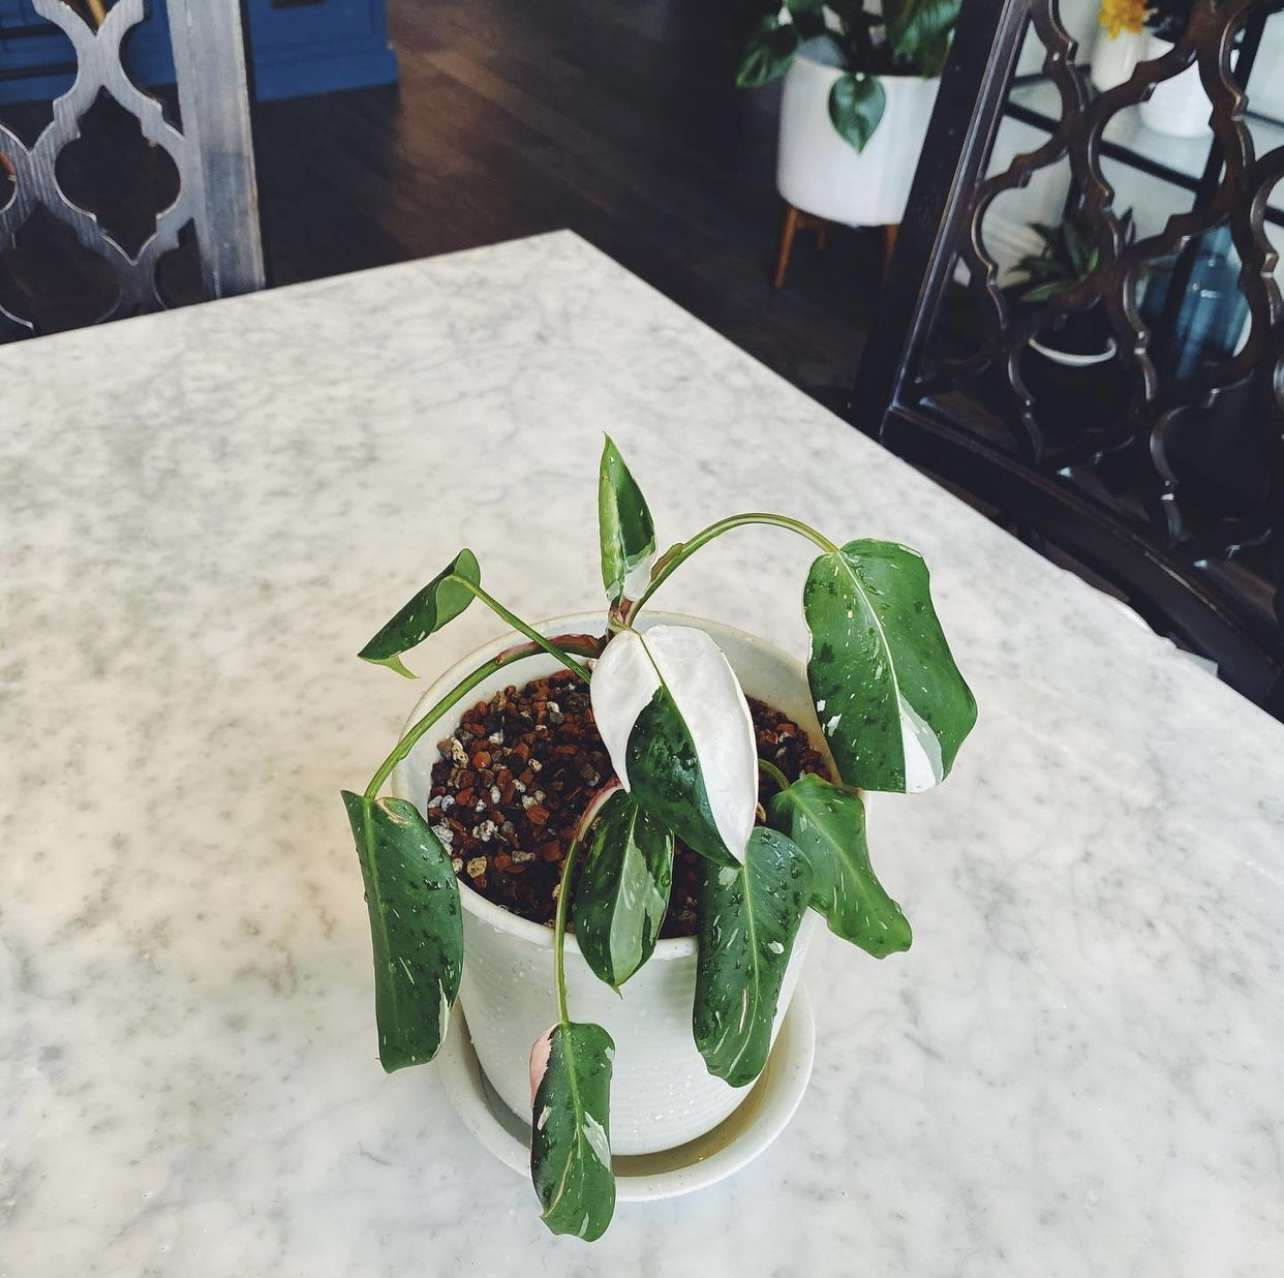 philodendron white princess with droopy leaves